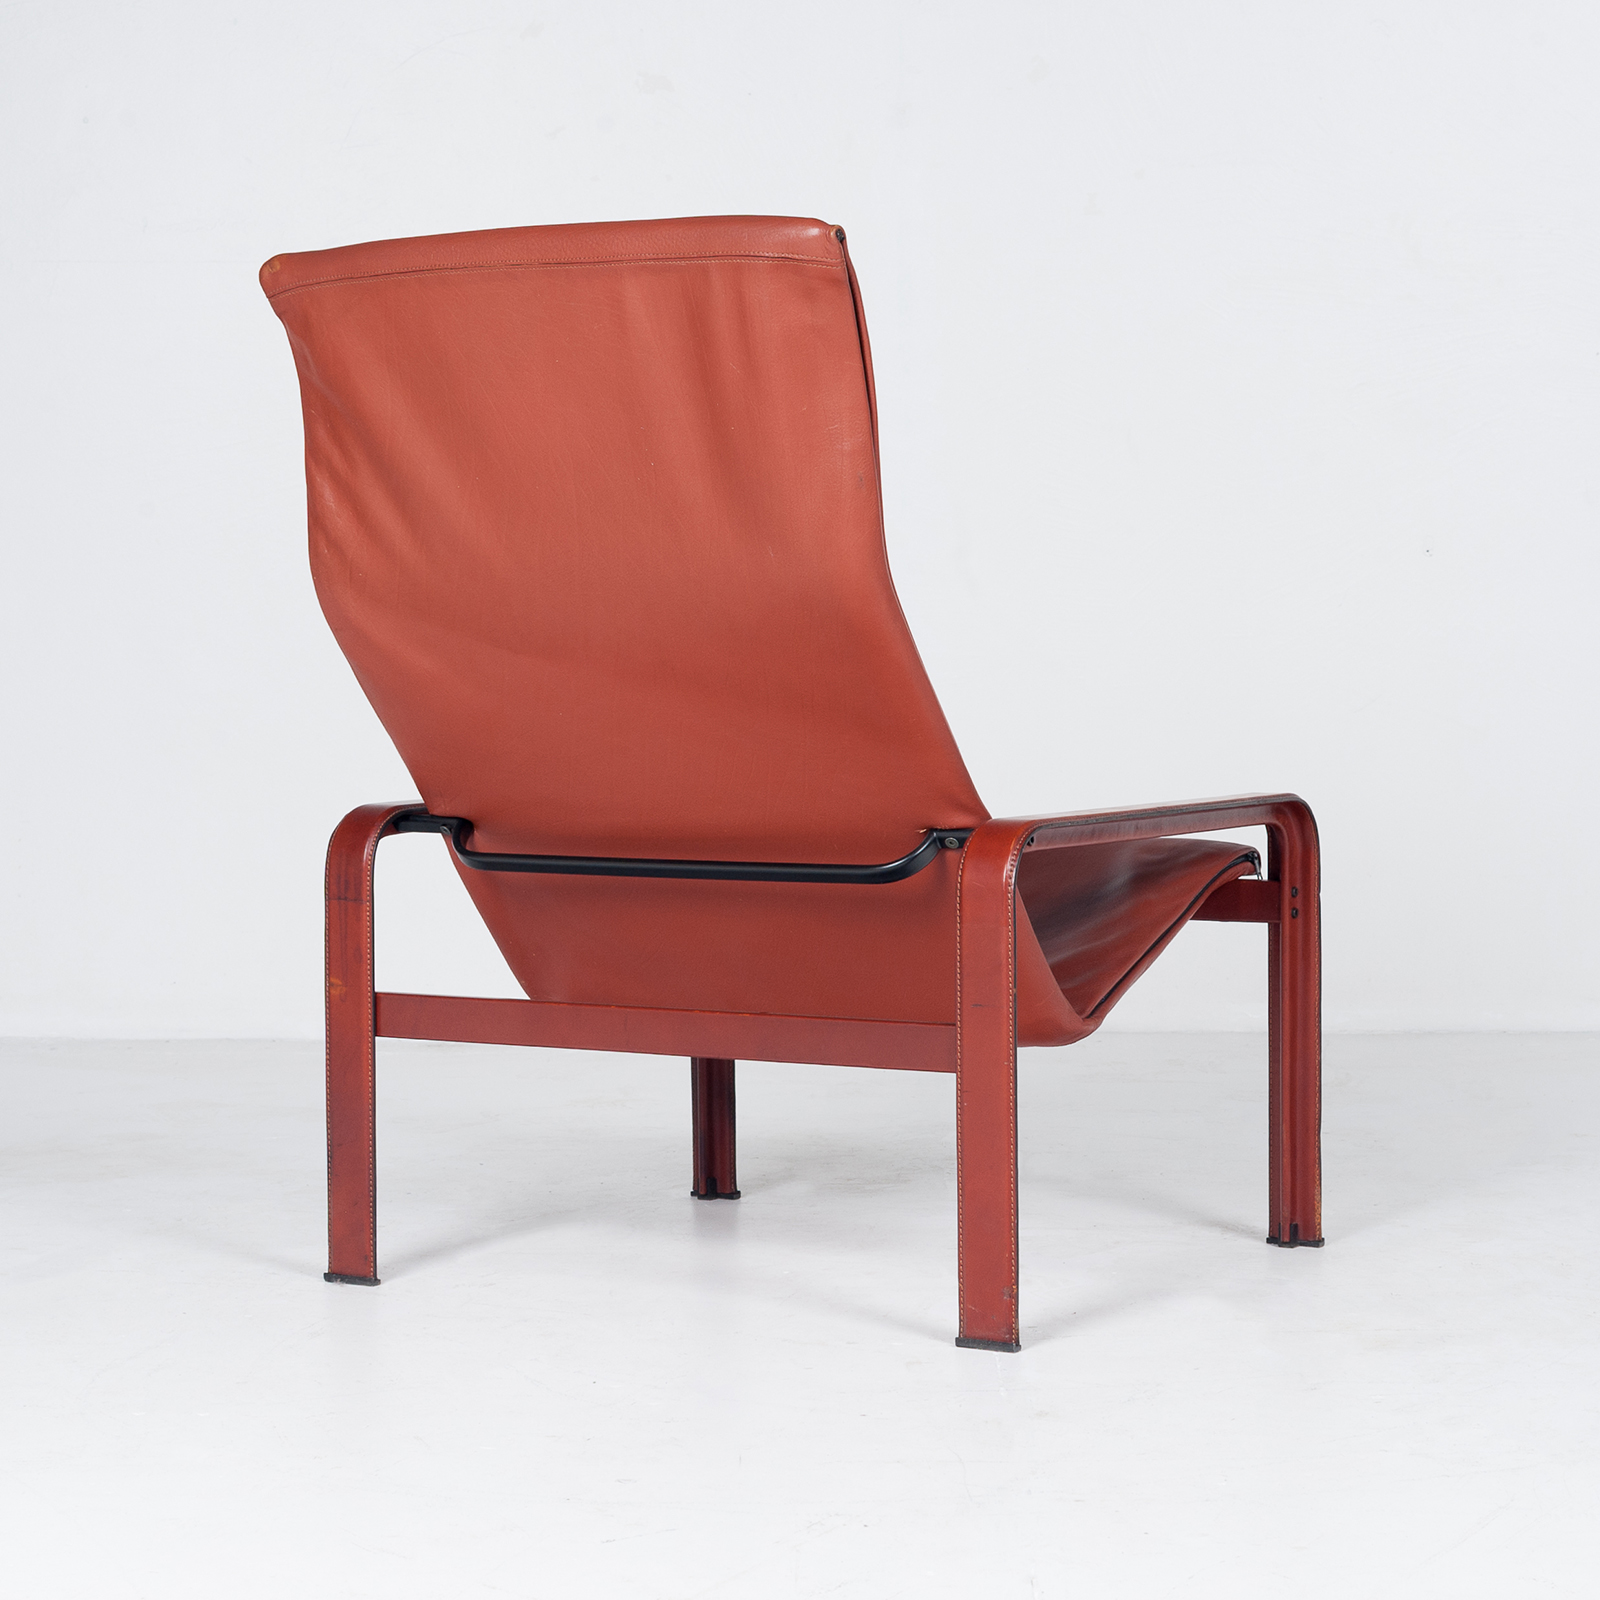 Armchair In Tan Leather By Matteo Grassi (mt Ac 194 128 It) 956